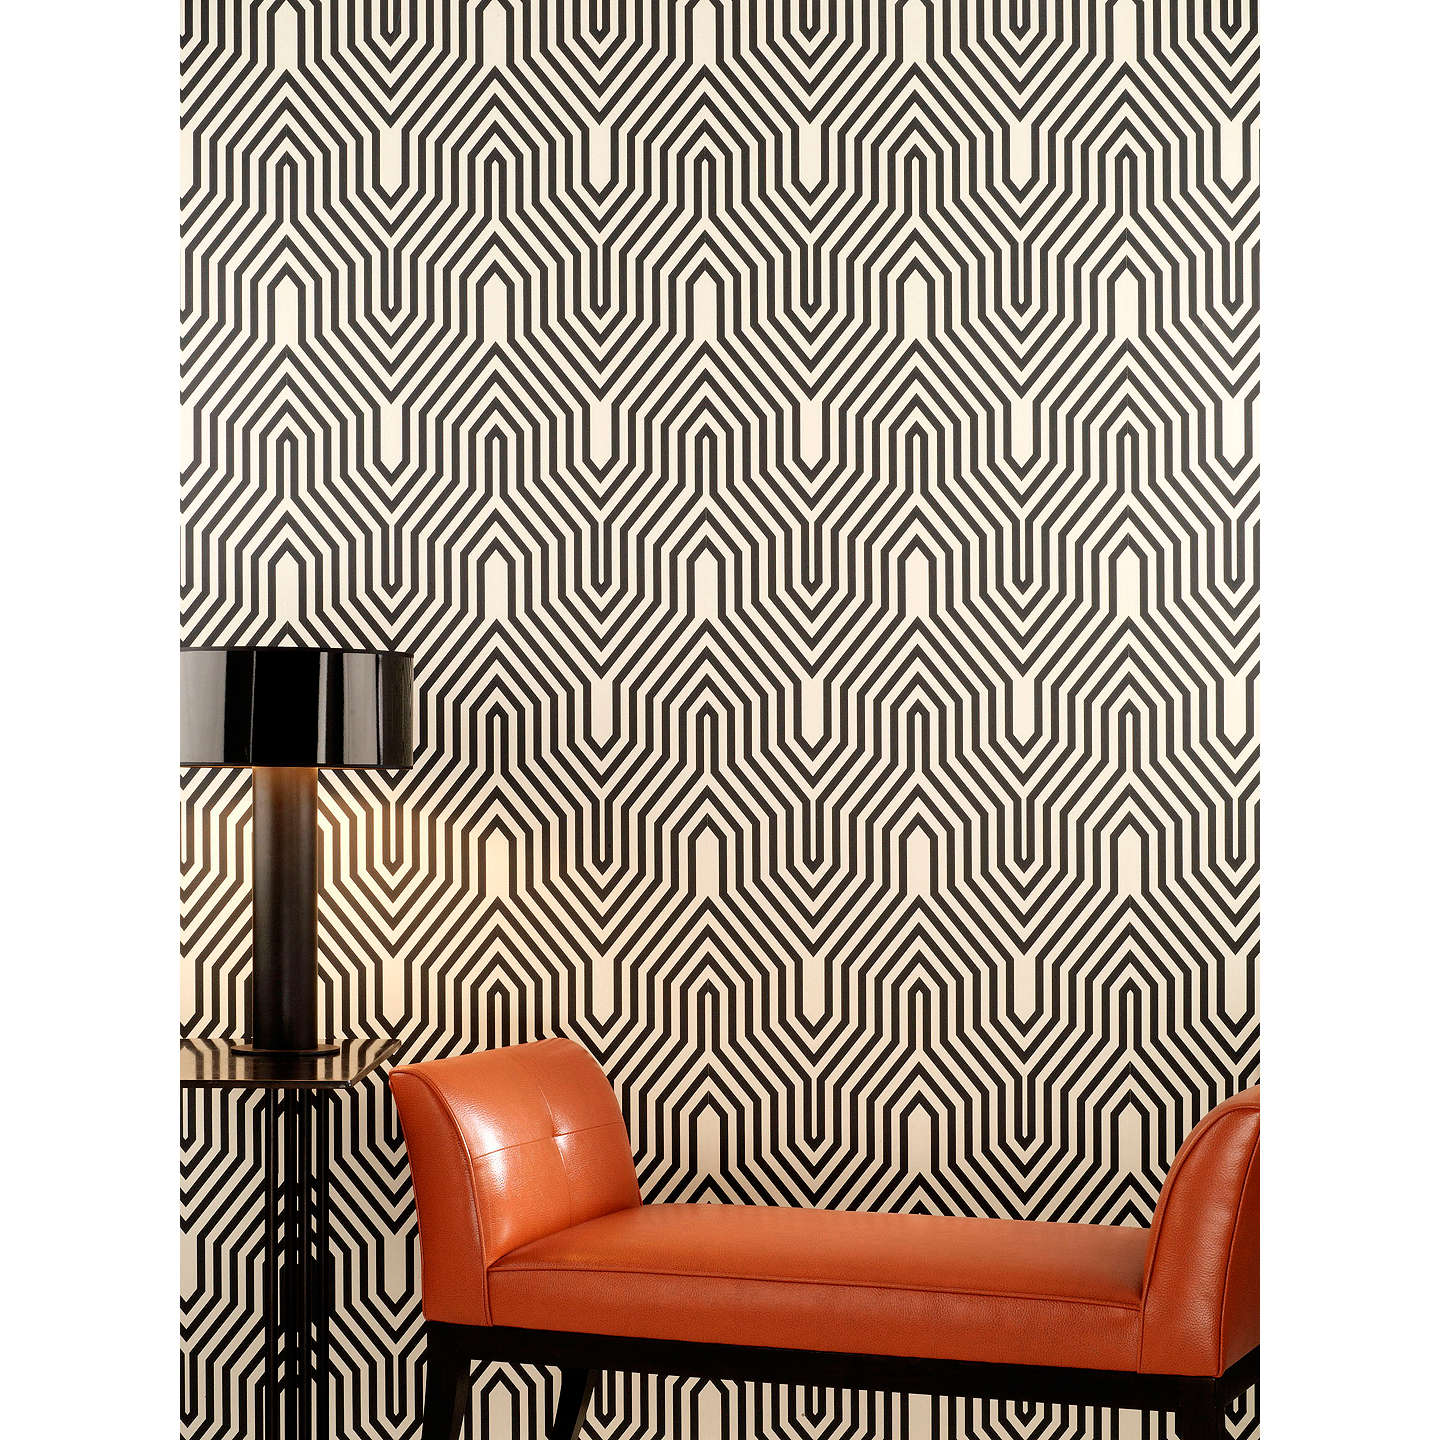 BuyOsborne & Little Minaret Wallpaper, W5551-04 Online at johnlewis.com